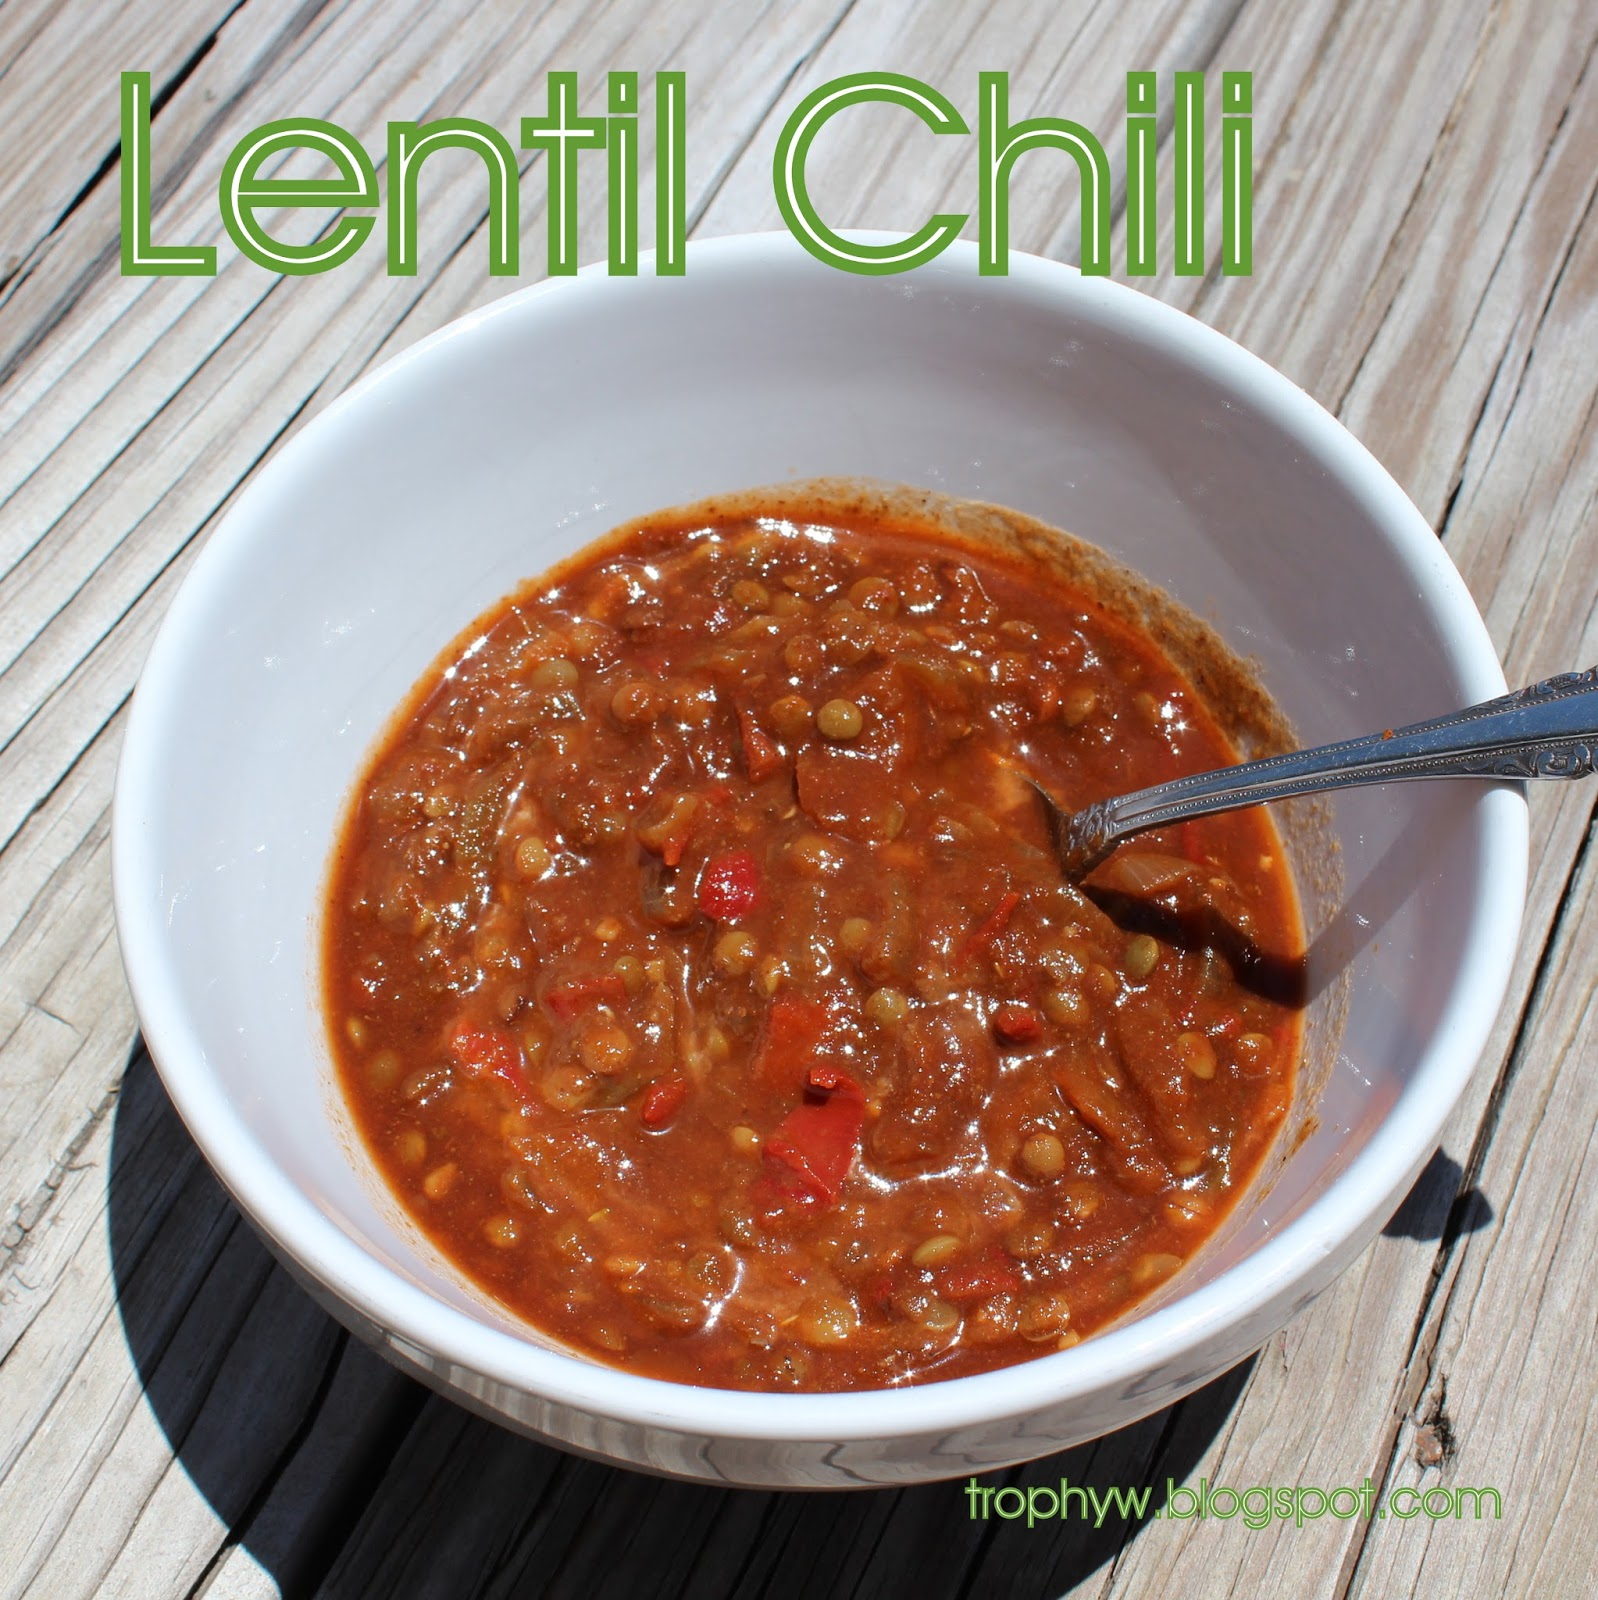 Tales of a Trophy Wife: Lentil Chili